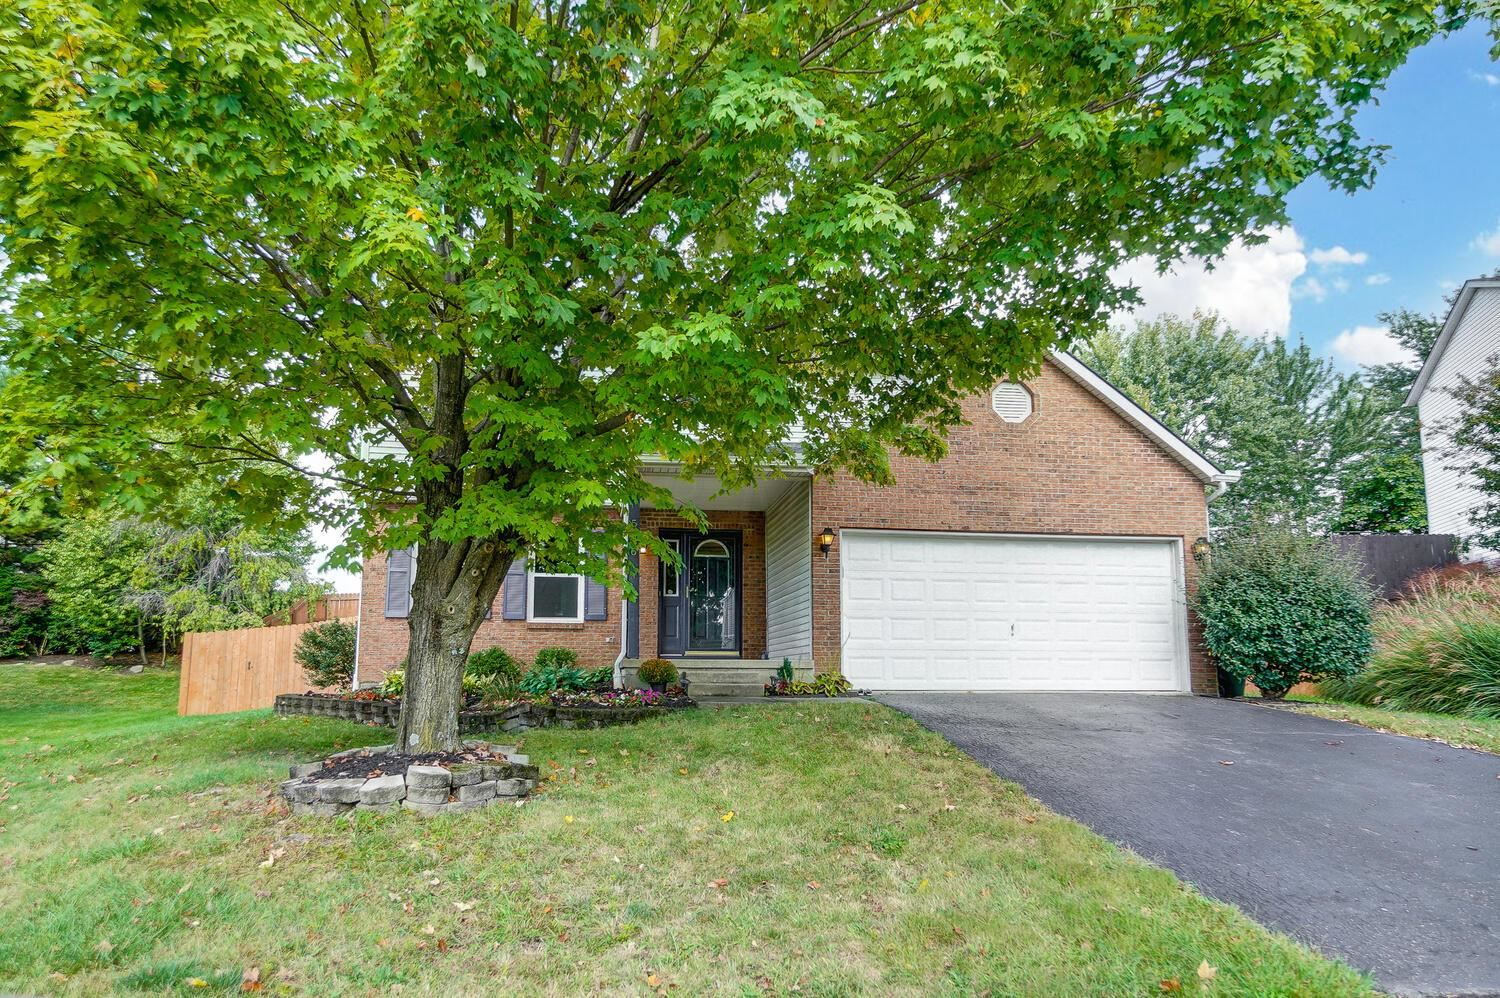 Photo of 5236 Nightshadow Drive, Westerville, OH 43081 (MLS # 221039247)